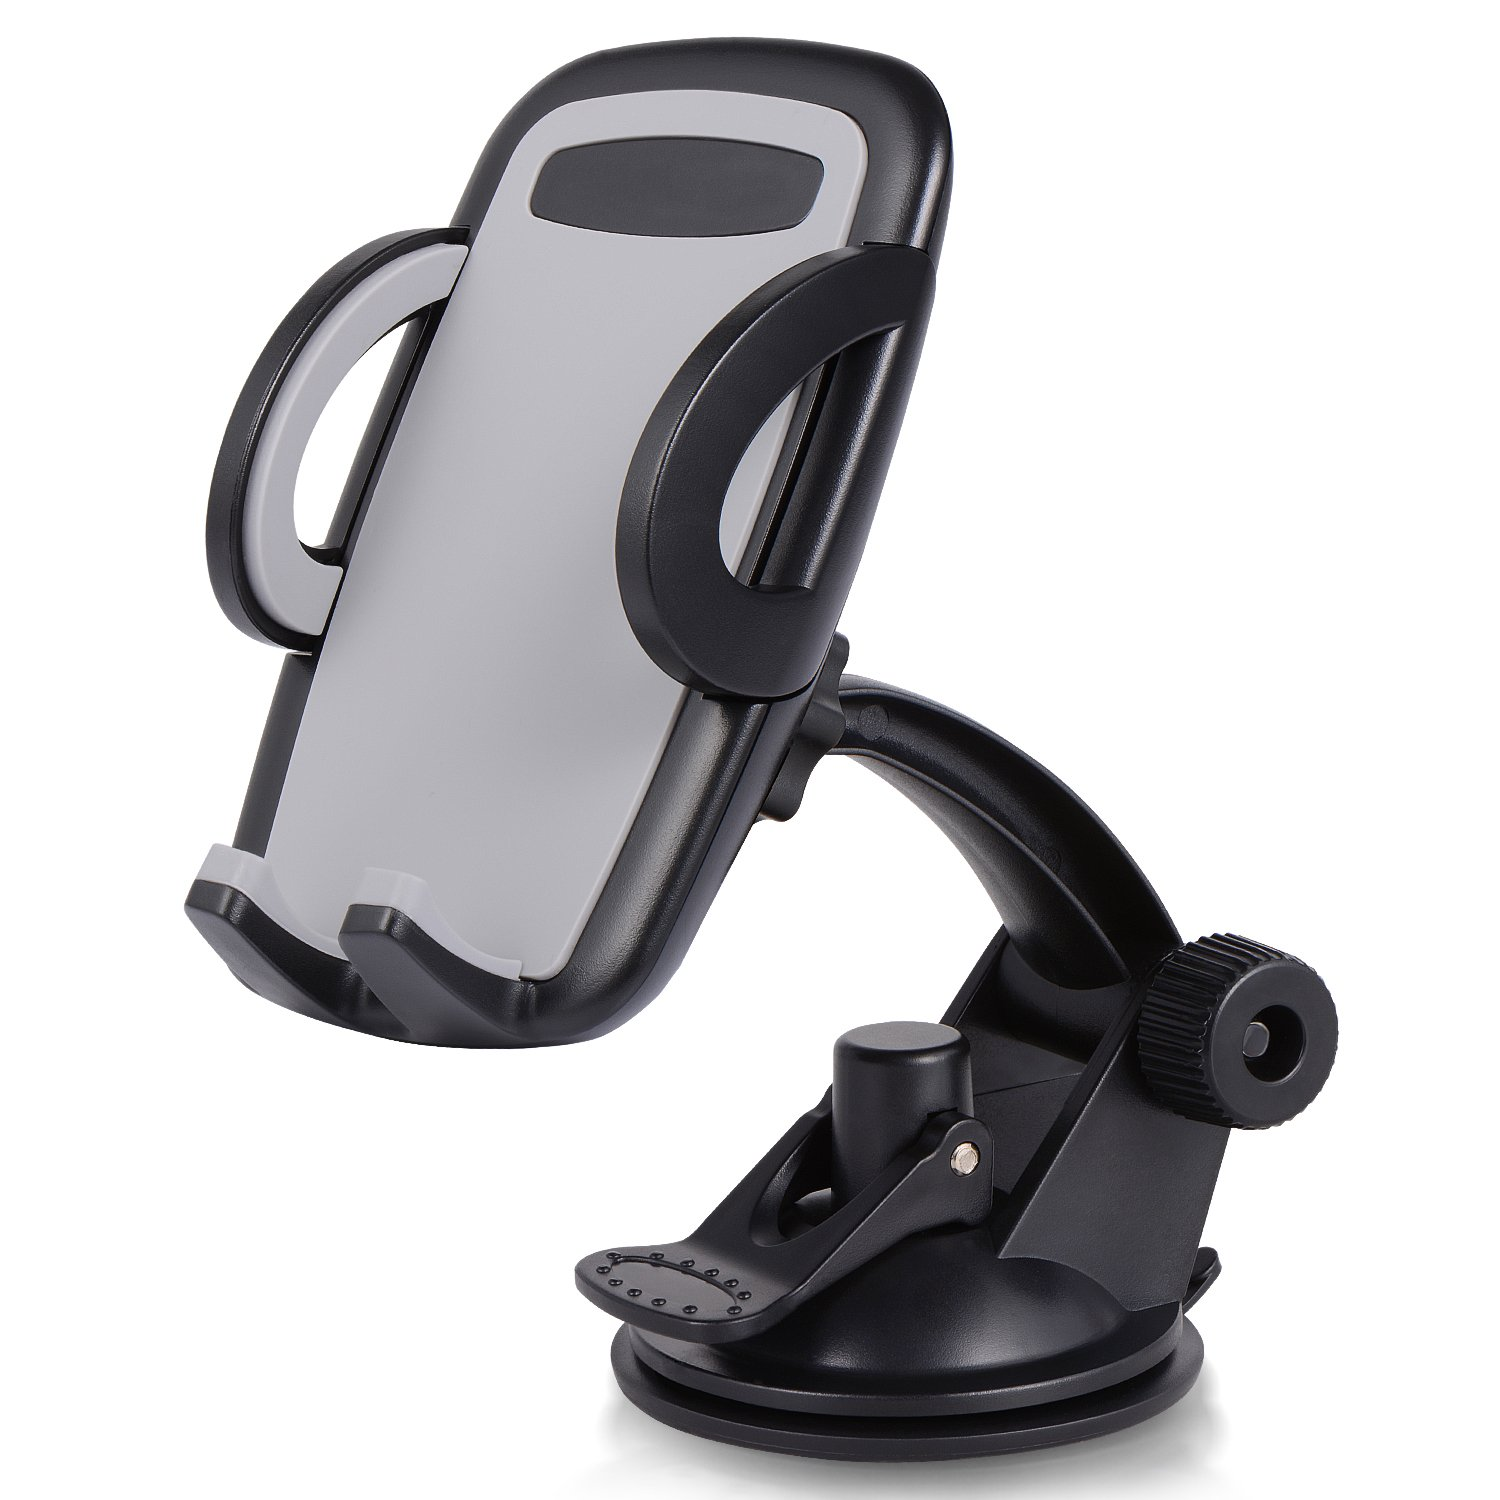 Car Mount Cradle with 4in to 6.5in Telescopic Arm and 180 Degree Rotation for iPhone Samsung and Other Smart Phones Amoner Dashboard Car Phone Holder